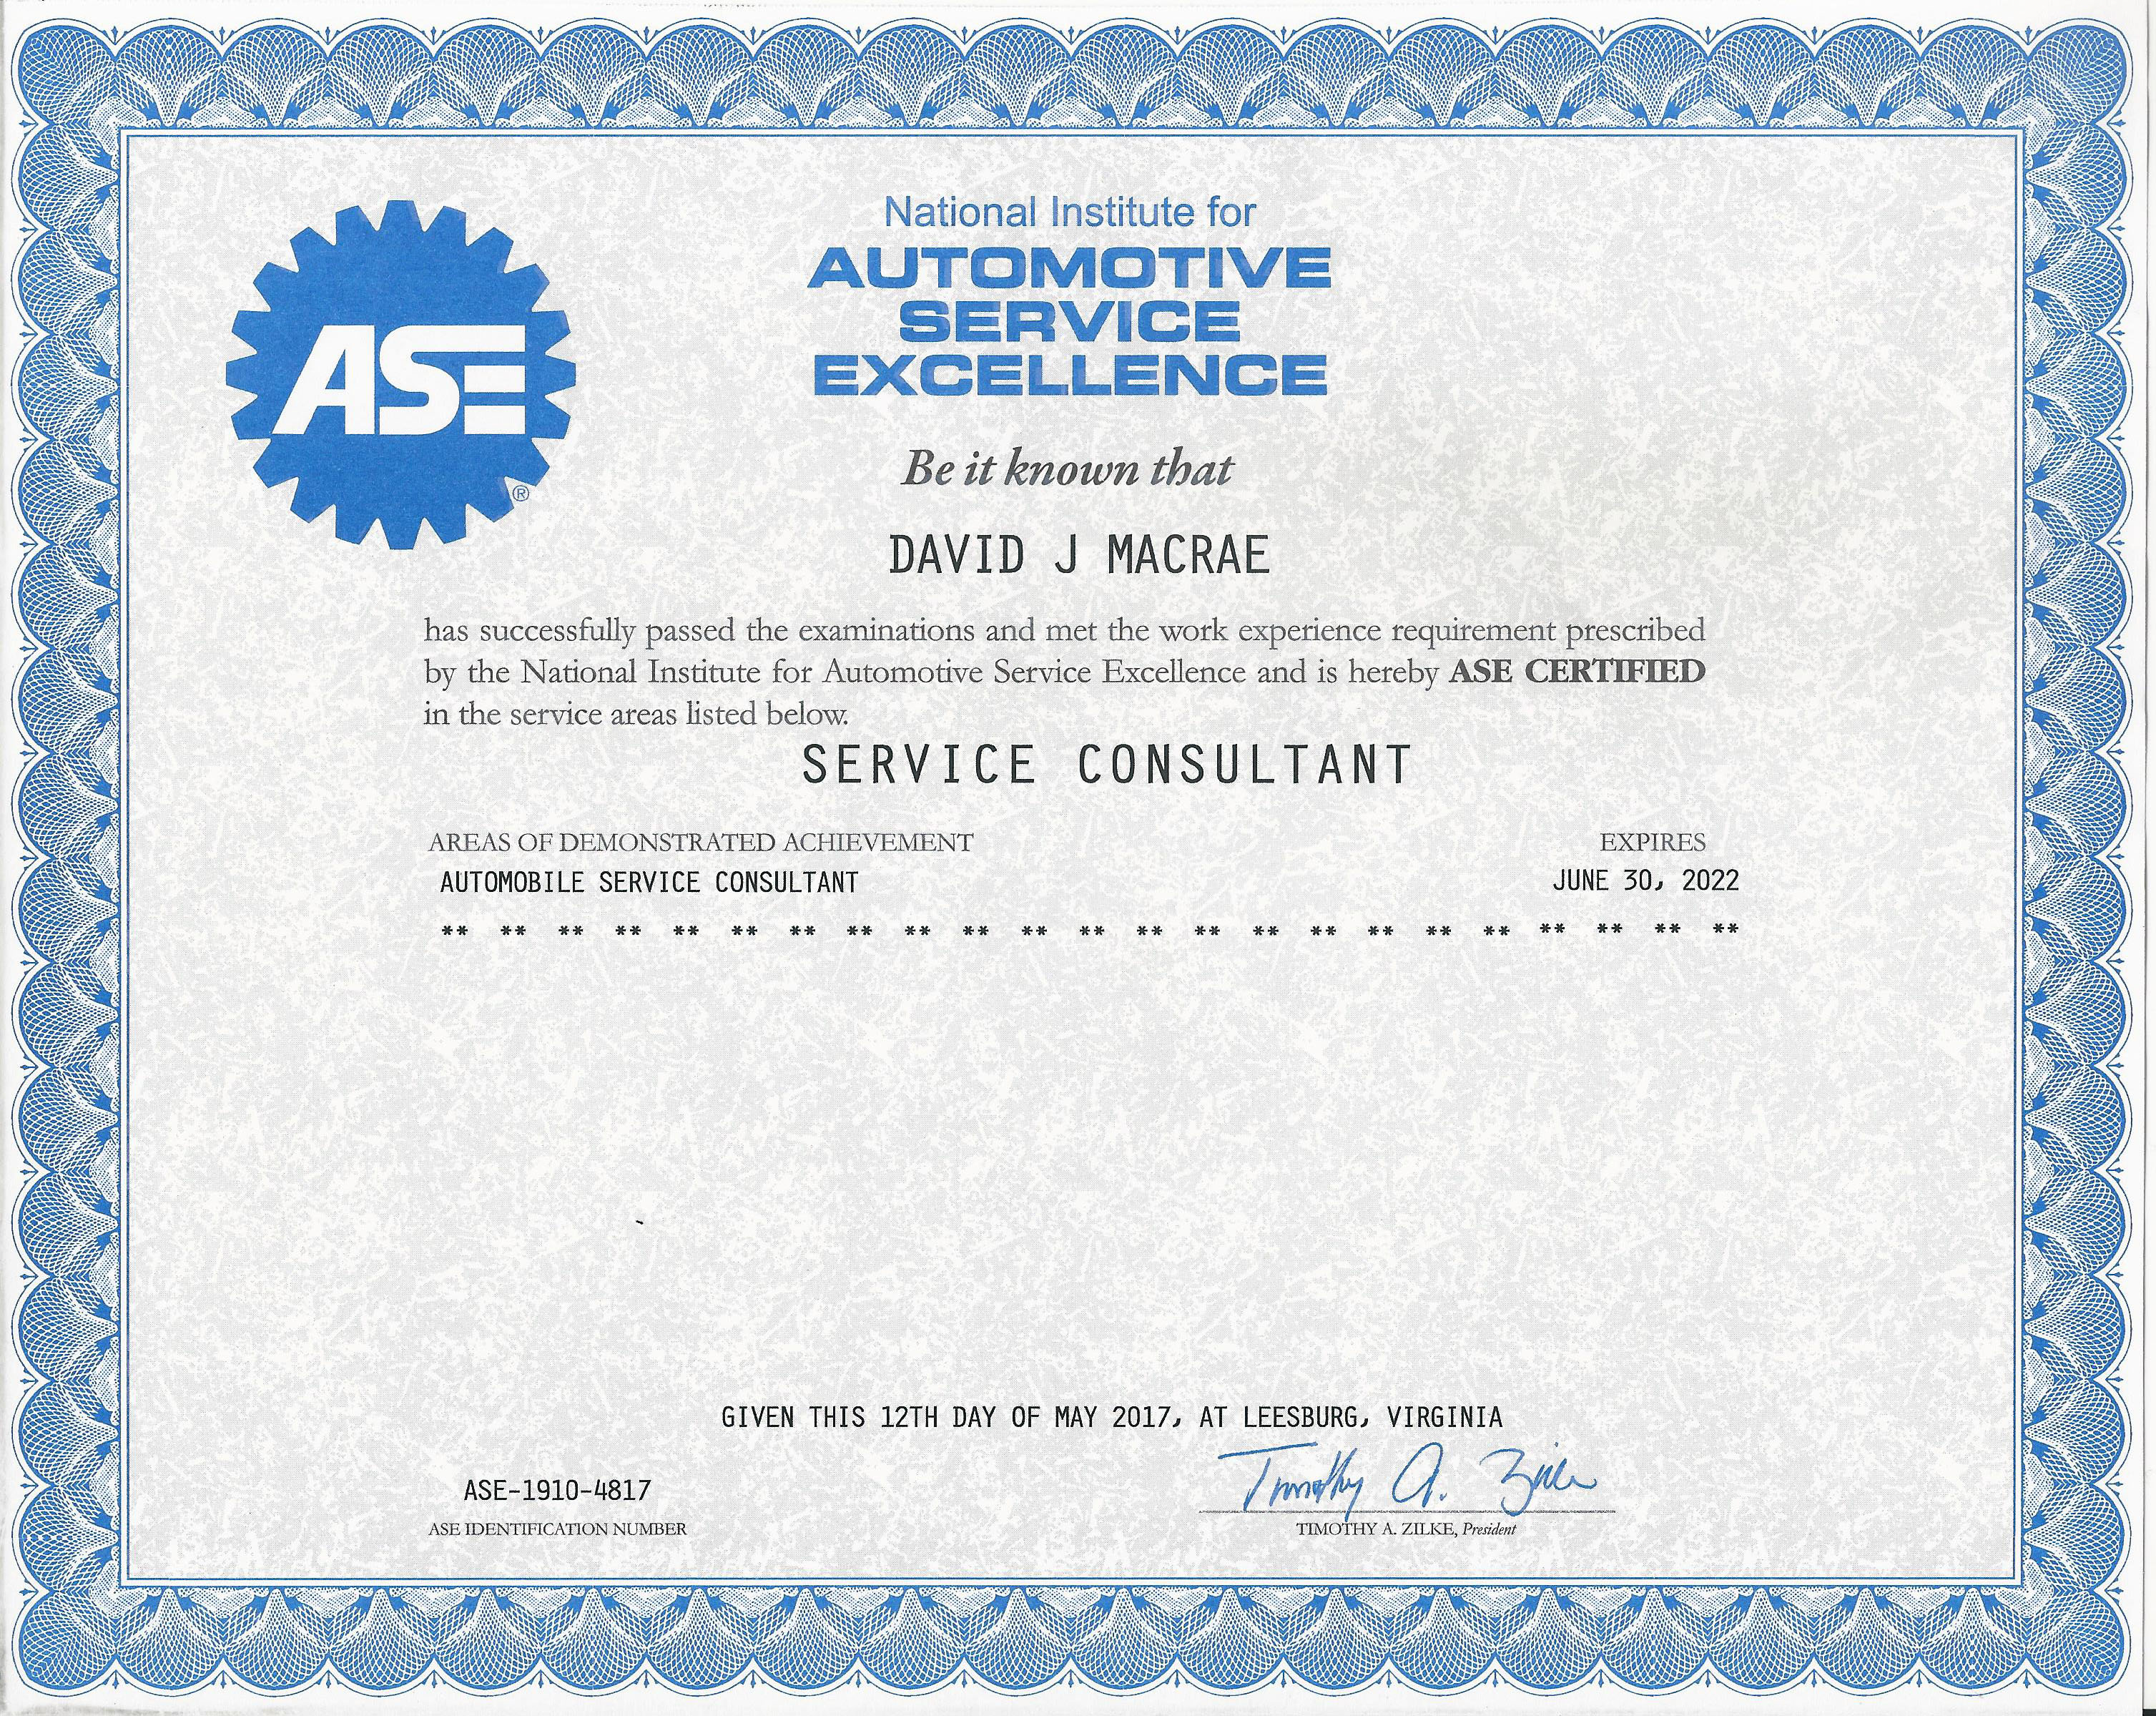 Ultra Automotive Repair, LLC | 603-734-2463 | Auto Mechanic